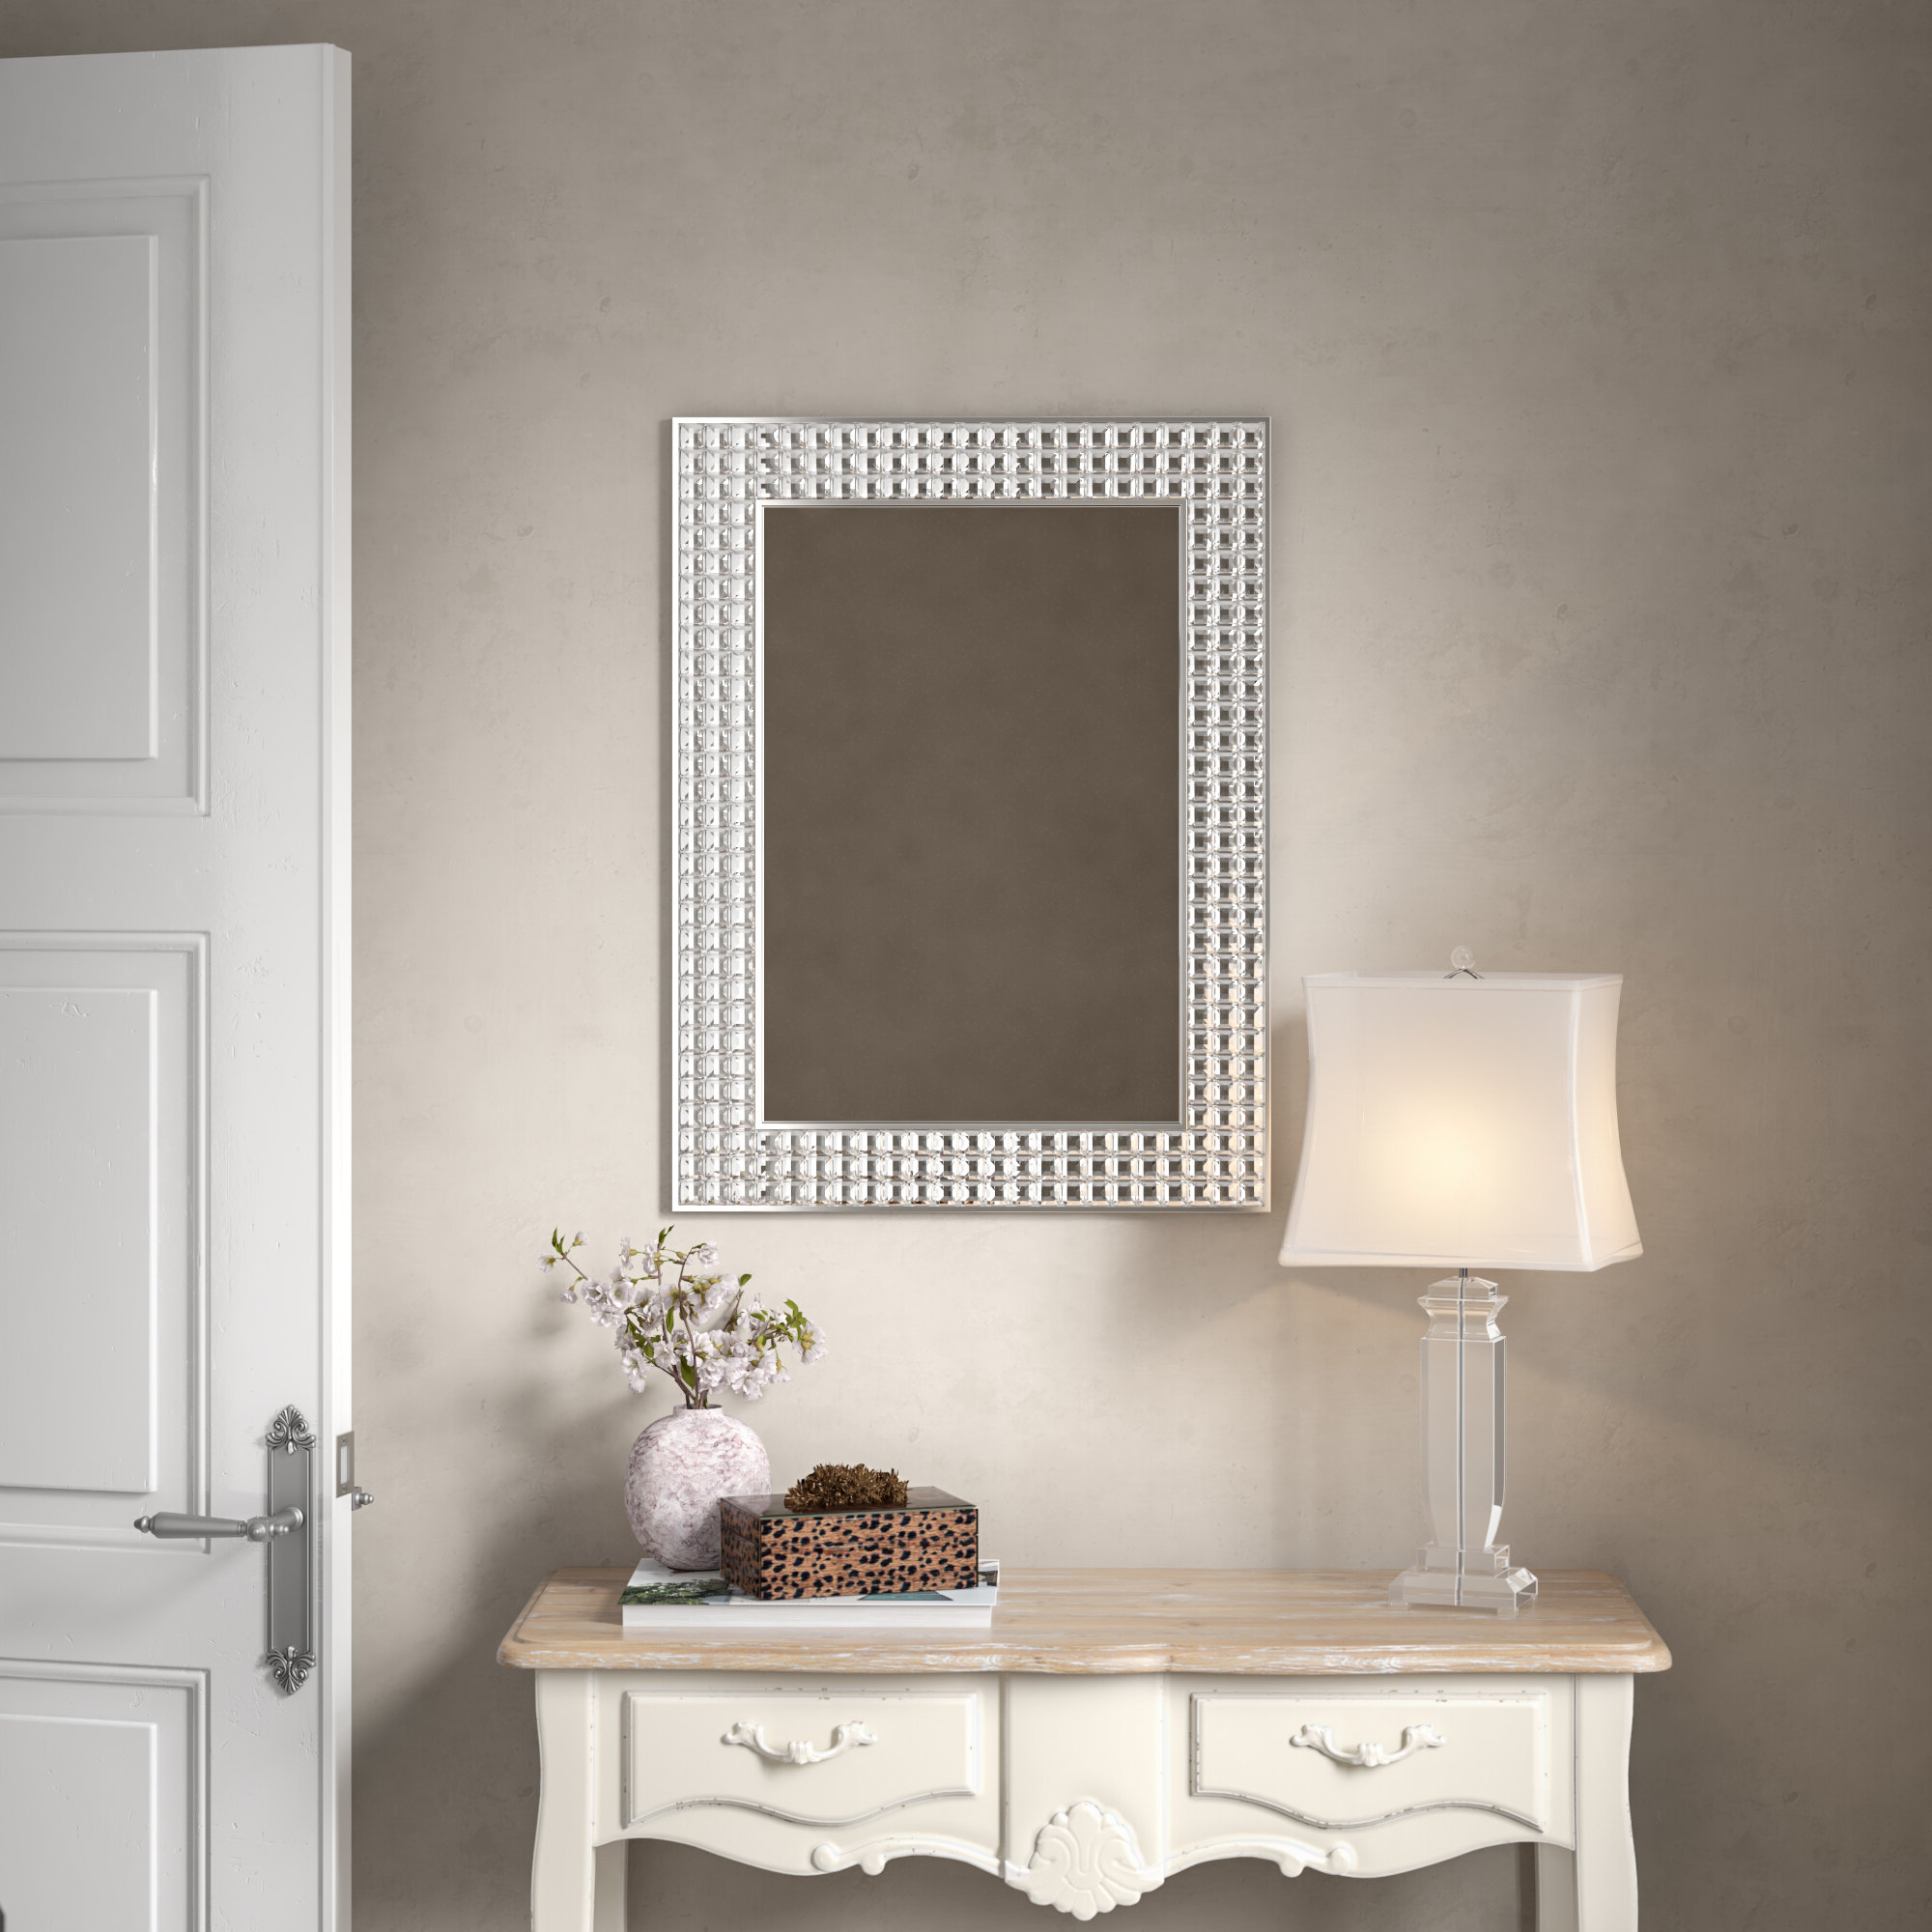 Famous Wall Mirrors With Crystals Throughout Crystals Wall Mirror (Gallery 6 of 20)